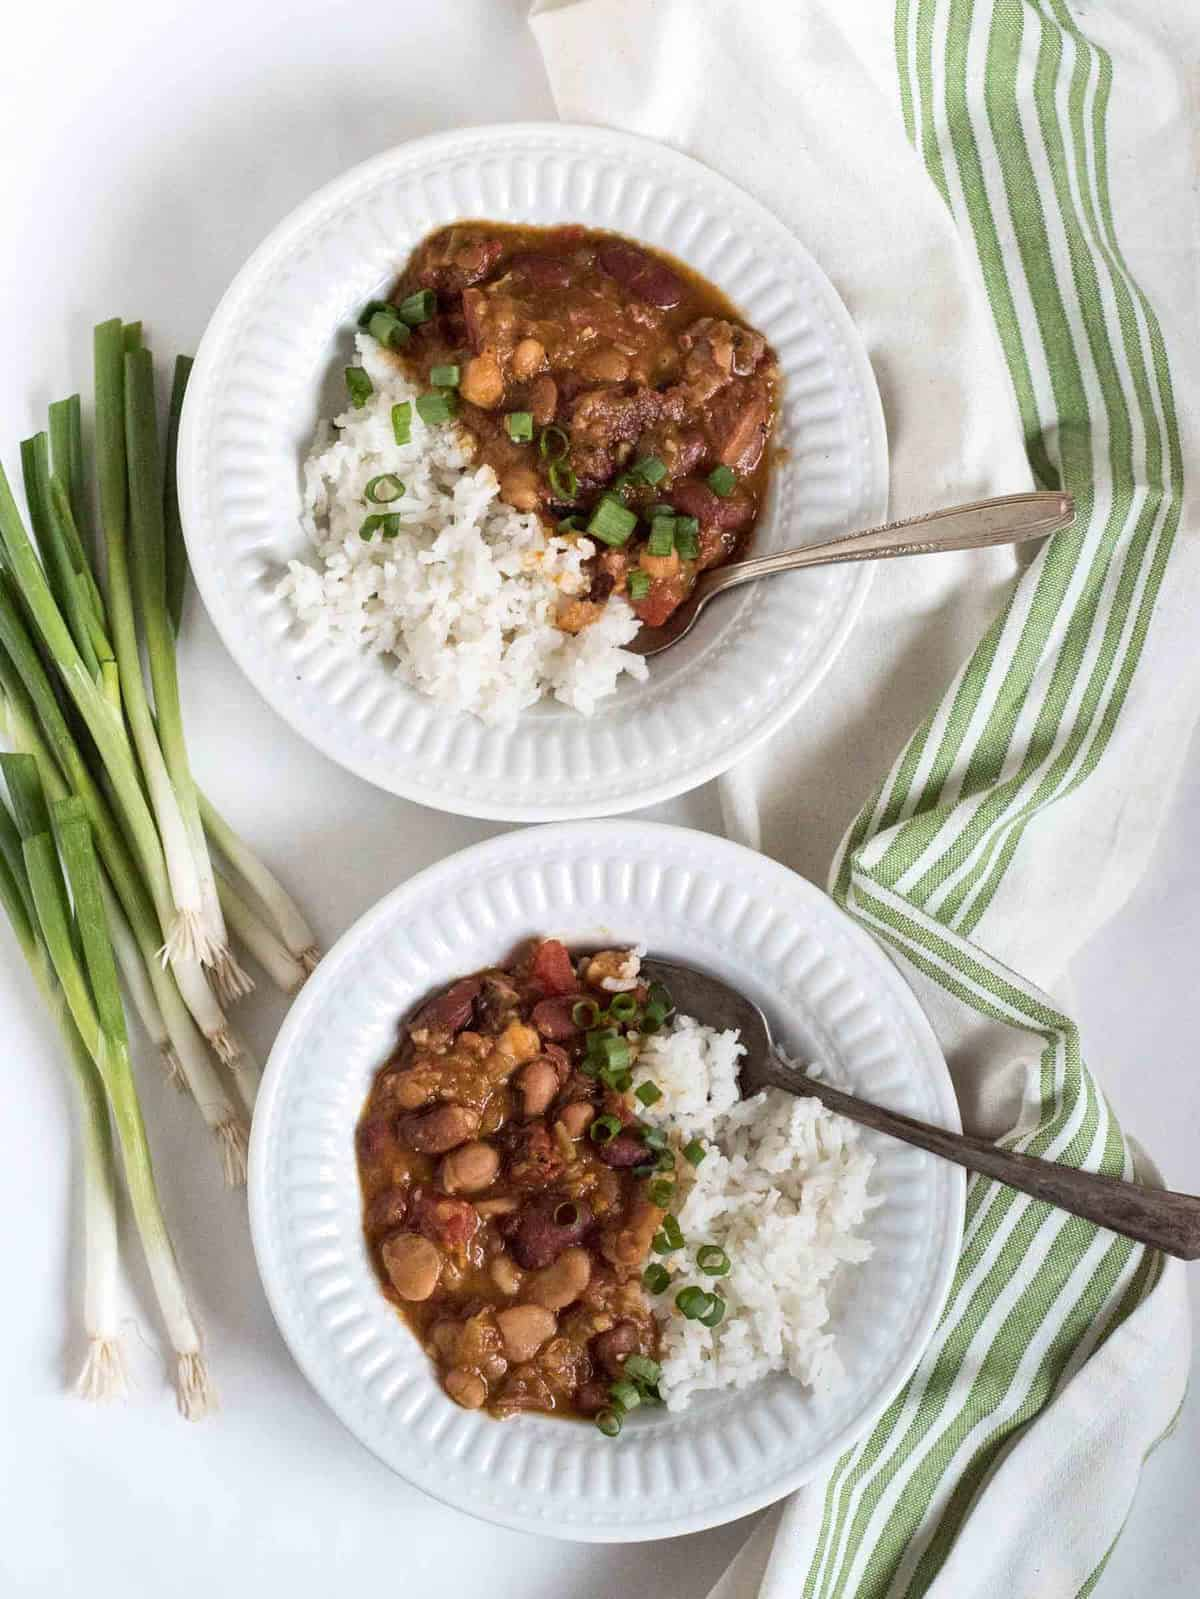 Instant Pot or slow cooker Cajun beans and rice is going to become a quick family favorite all winter long!